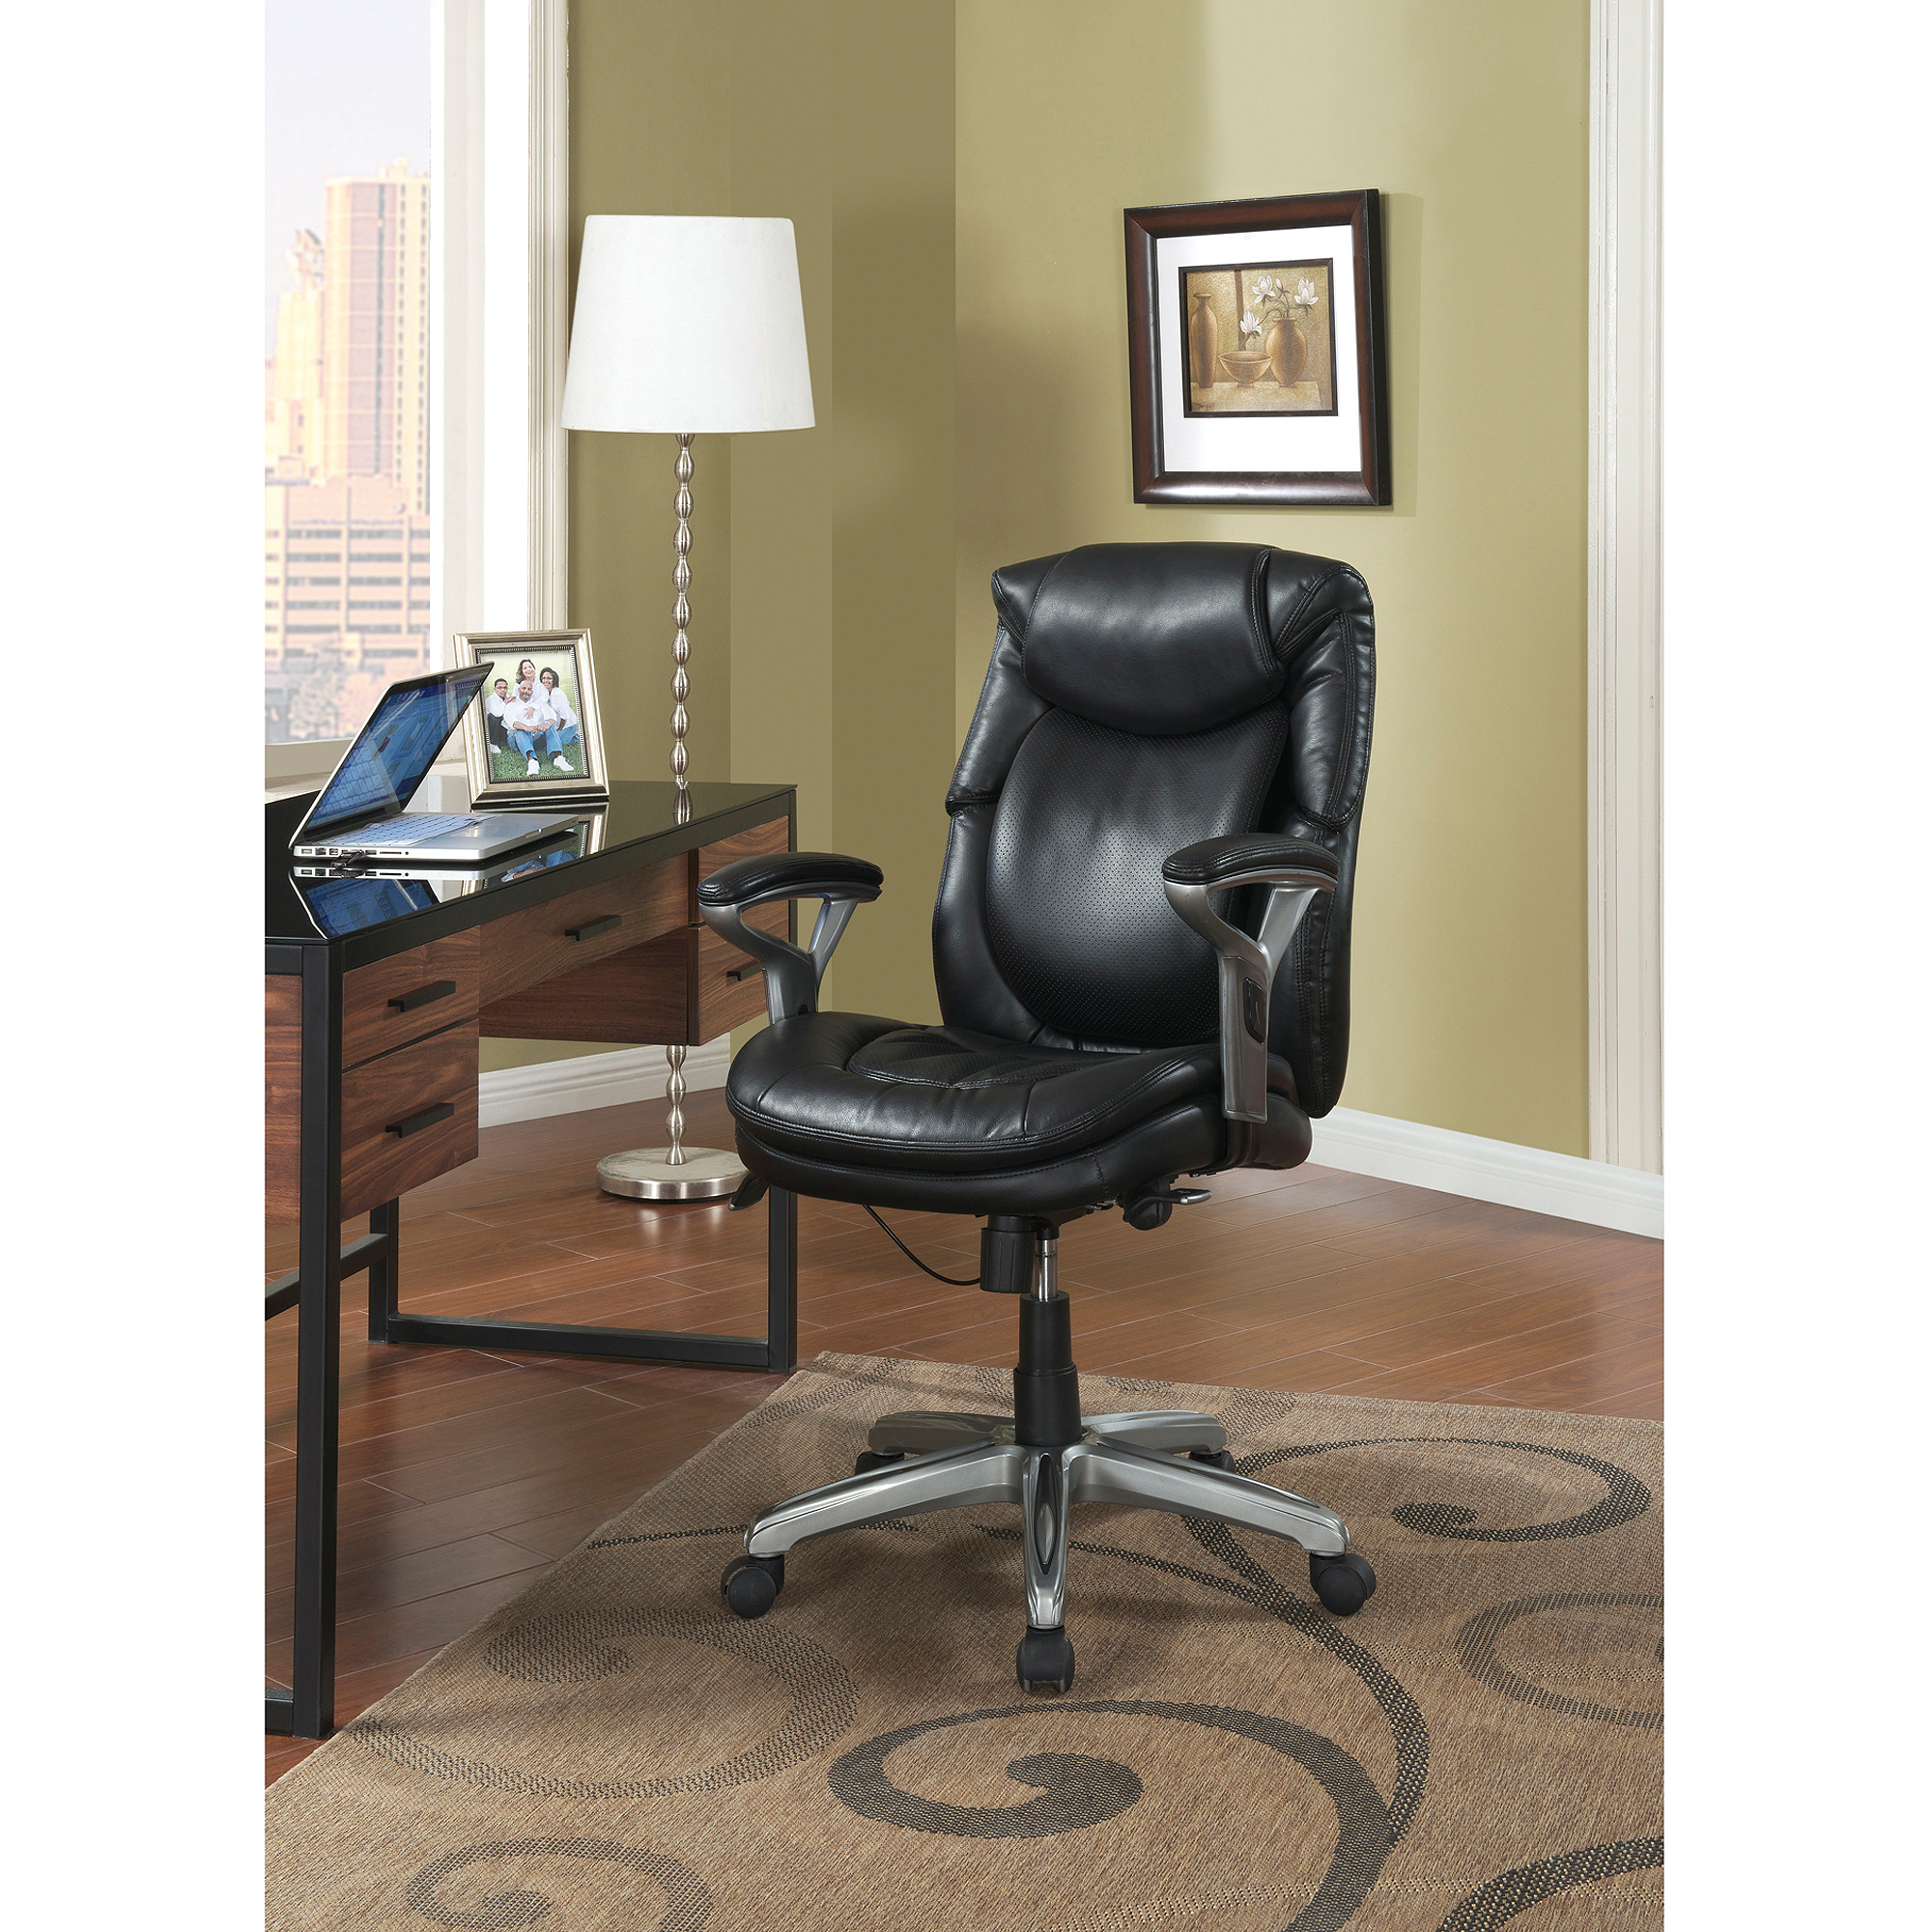 Serta AIR Health and Wellness Mid Back Office Chair Bonded Leather